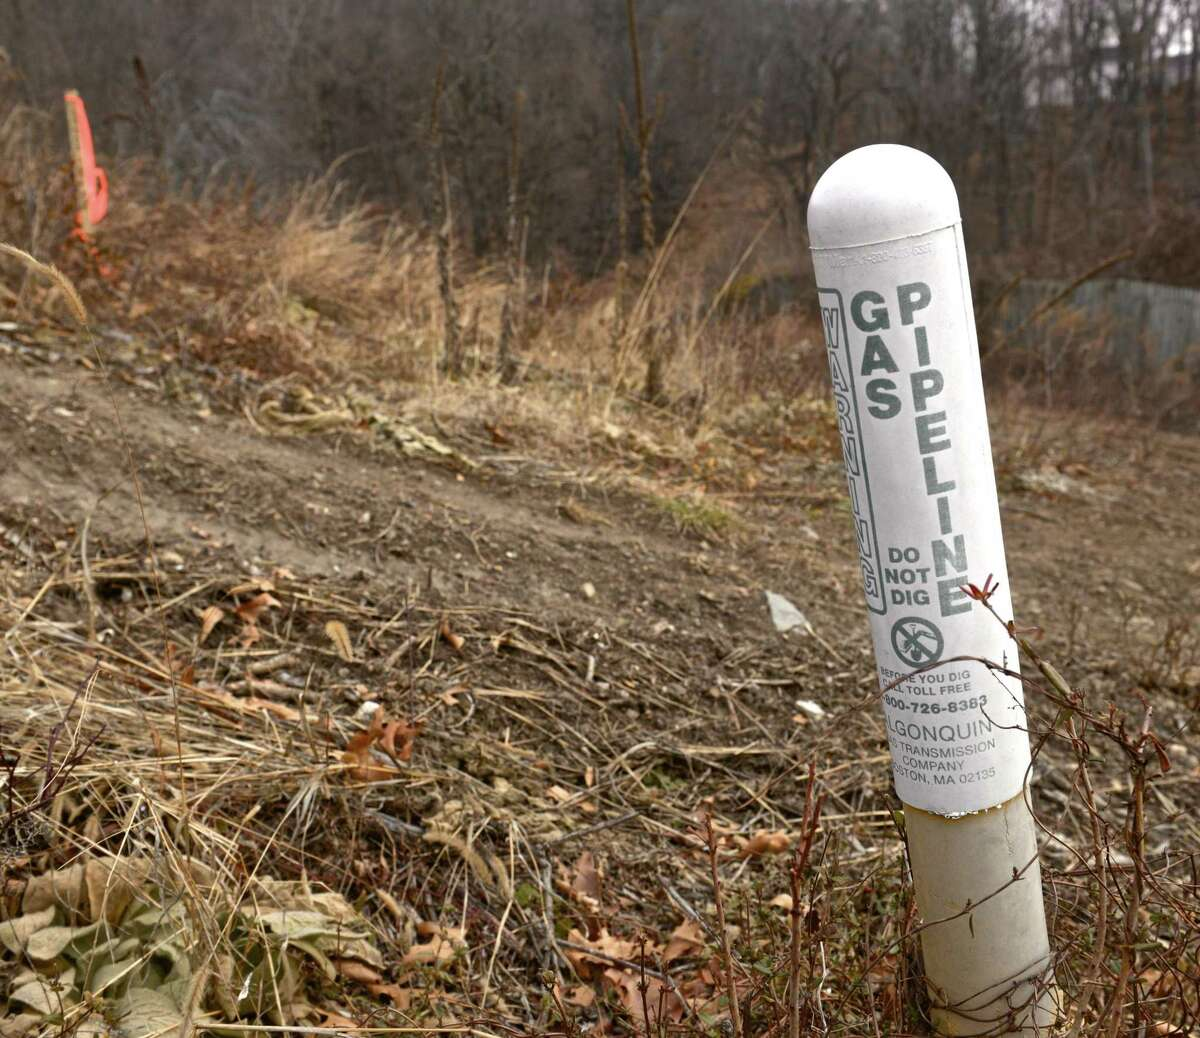 Eversource is improving its natural gas pipeline system in Danbury.